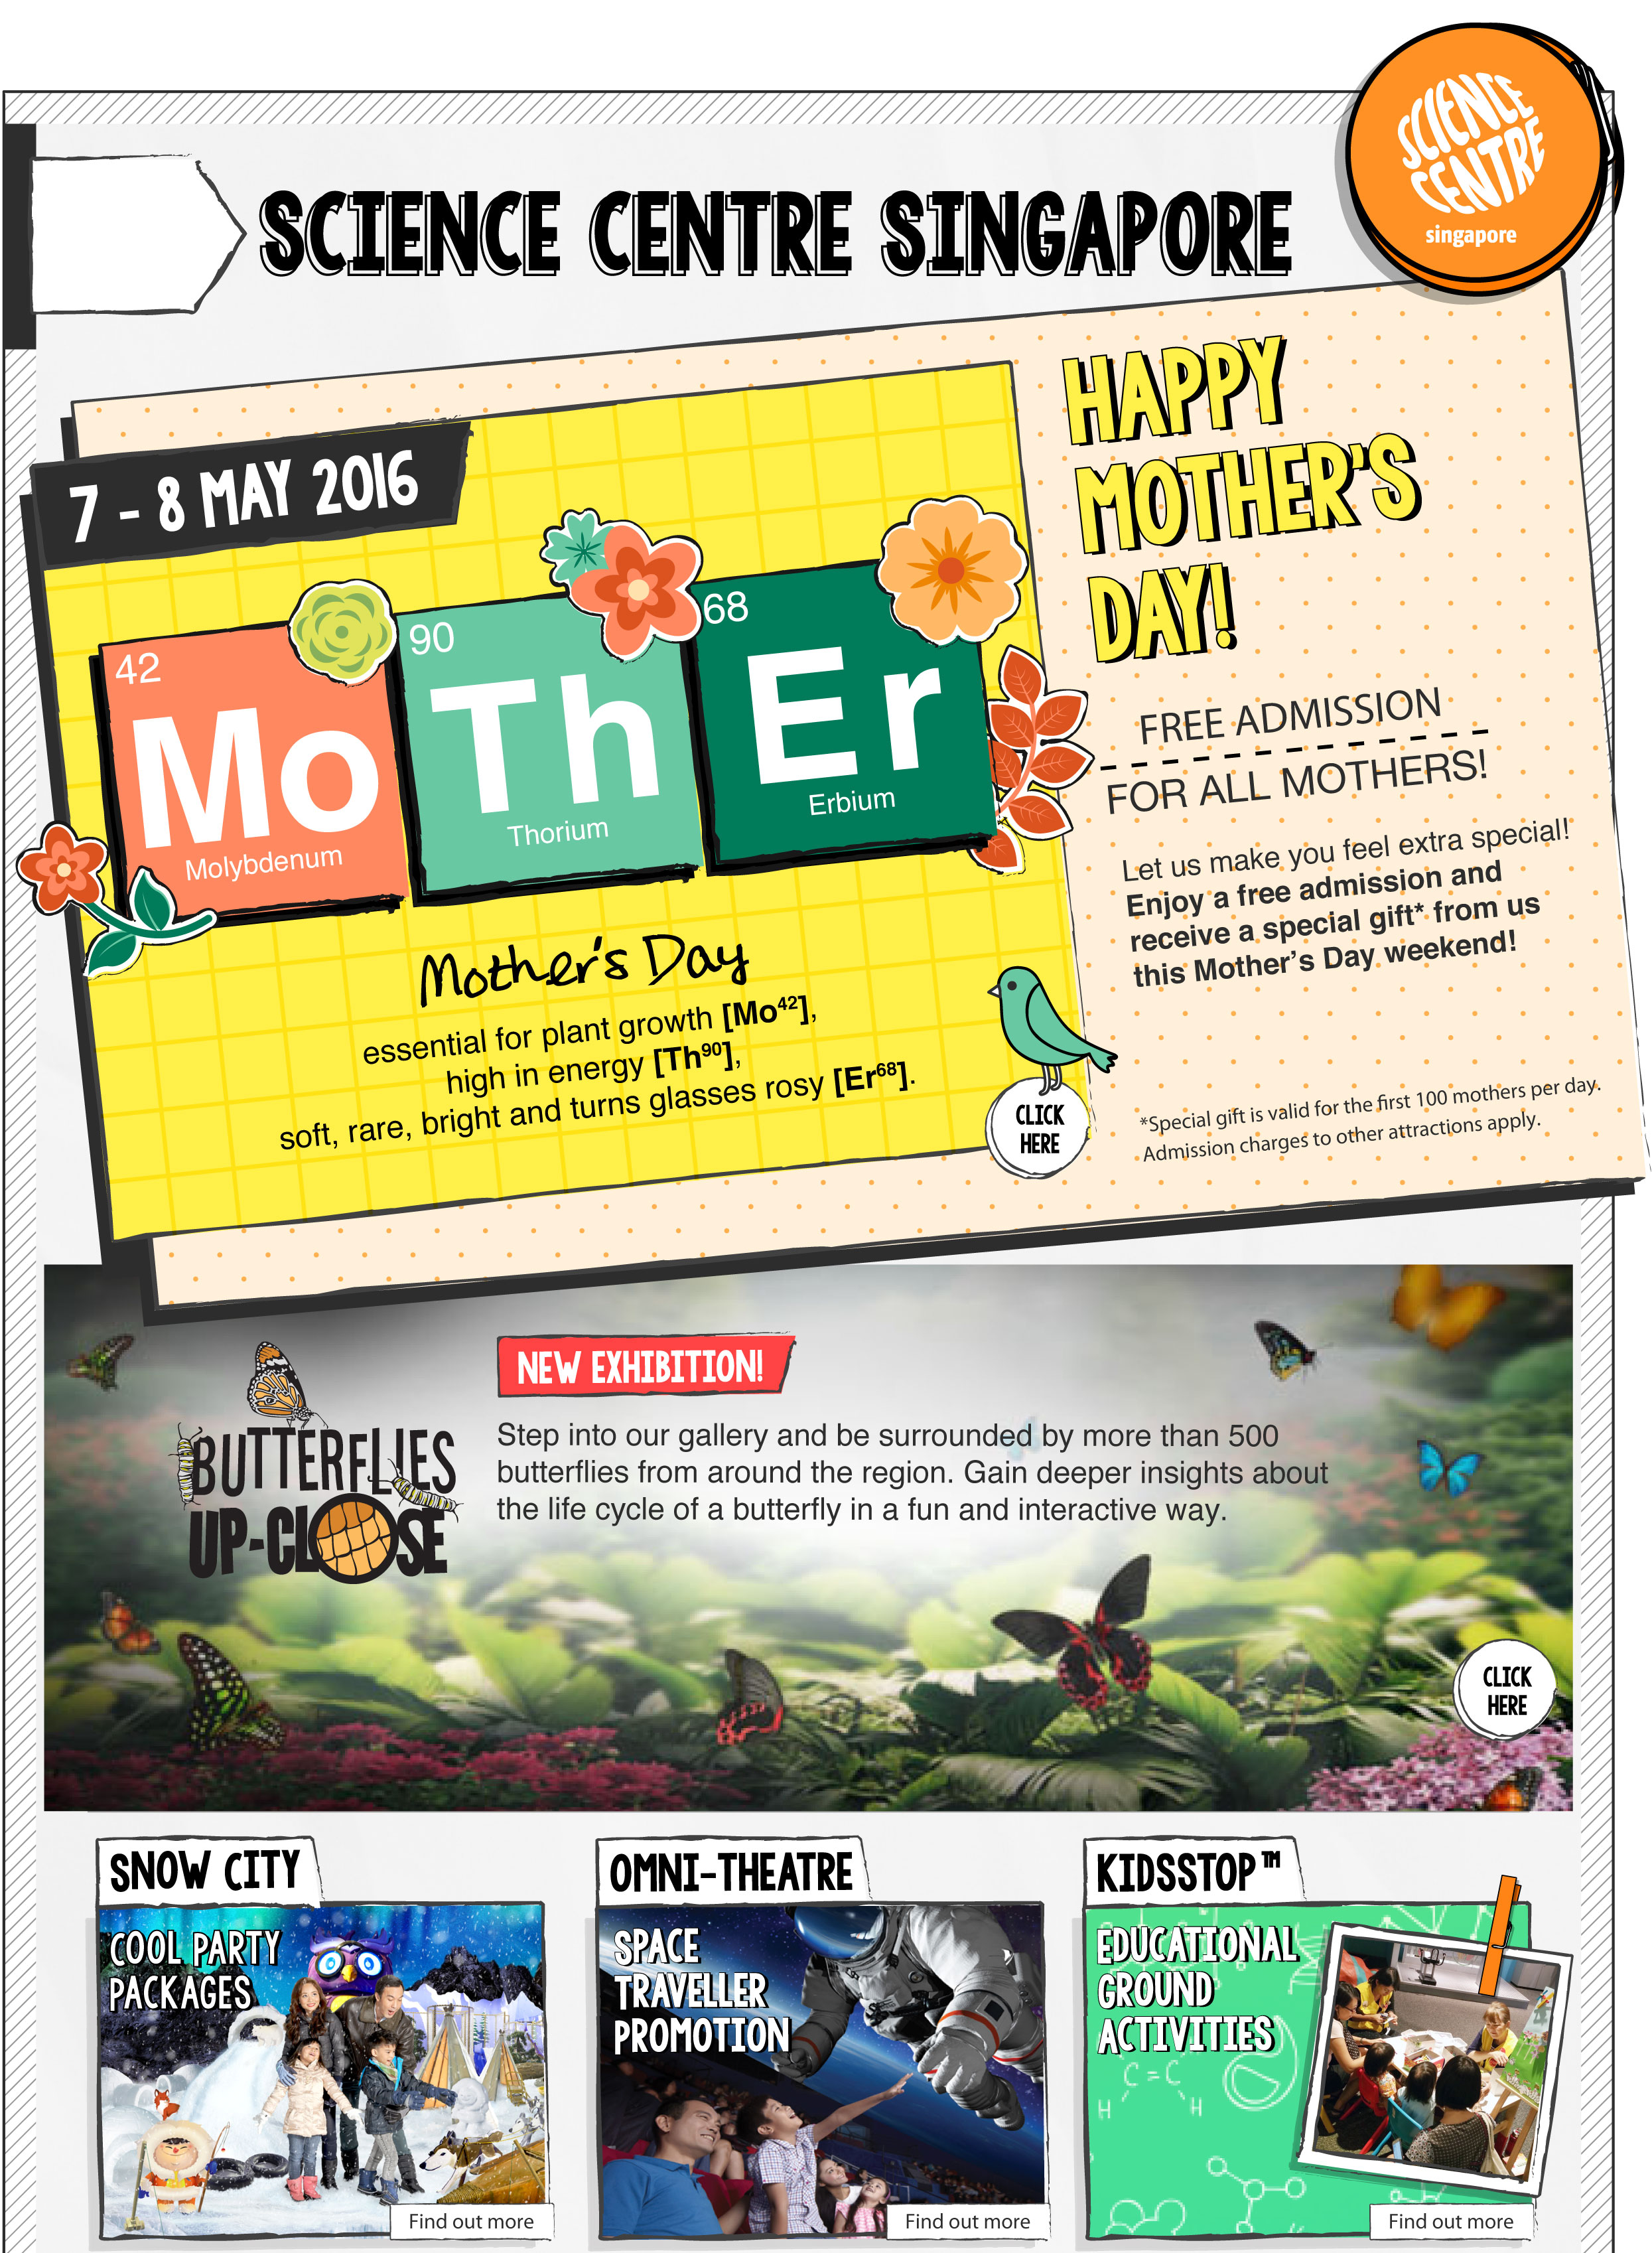 Science Centre Celebrates Mother's Day with Free Admission for all mothers and receive a special gift* this Mother's Day weekend! *First 100 mothers per day.